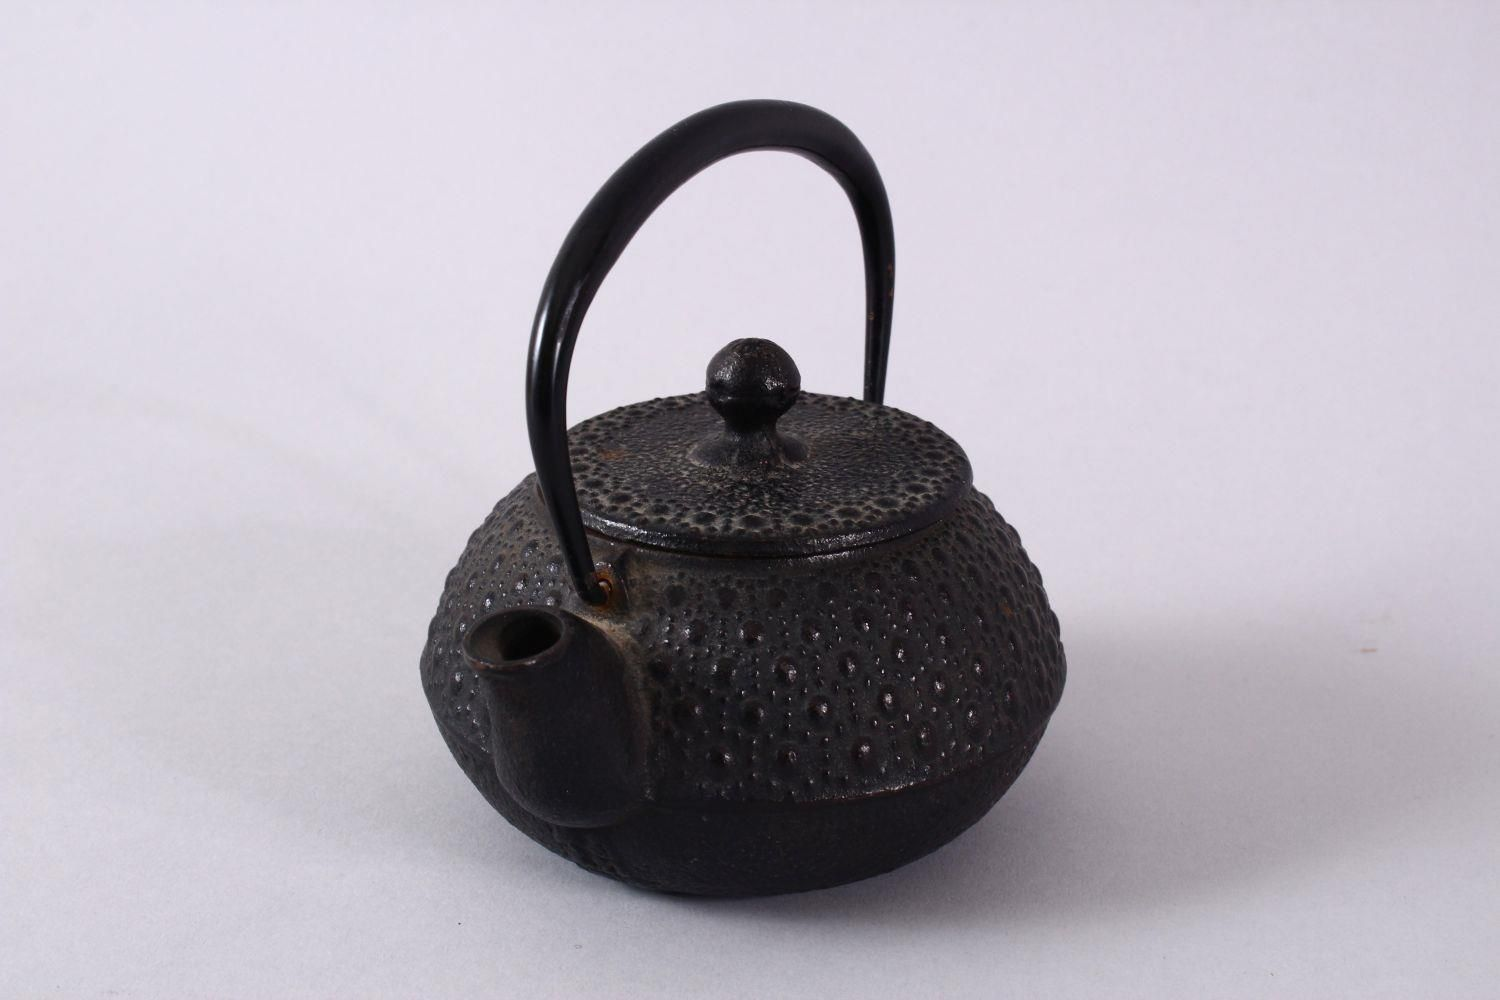 A JAPANESE IRON / METAL MOULDED TEAPOT & COVER, the body with moulded stud decoration, possibly iron - Image 2 of 5